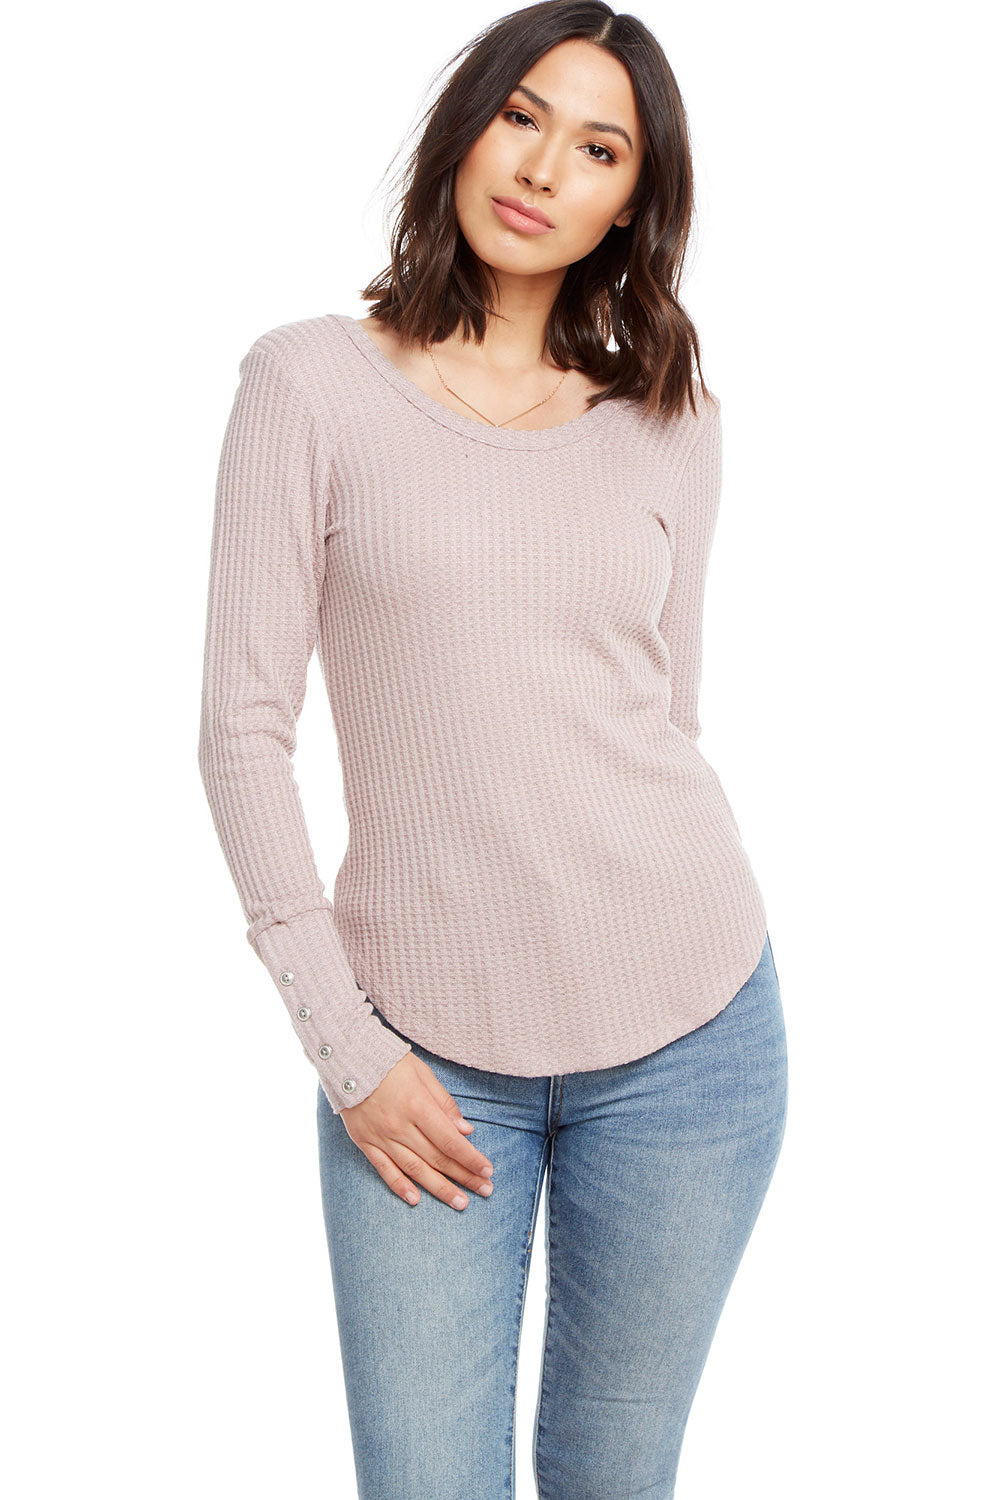 Thermal Long Sleeve Double Scoop Button Cuff Shirttail Tee, WOMENS, chaserbrand.com,chaser clothing,chaser apparel,chaser los angeles